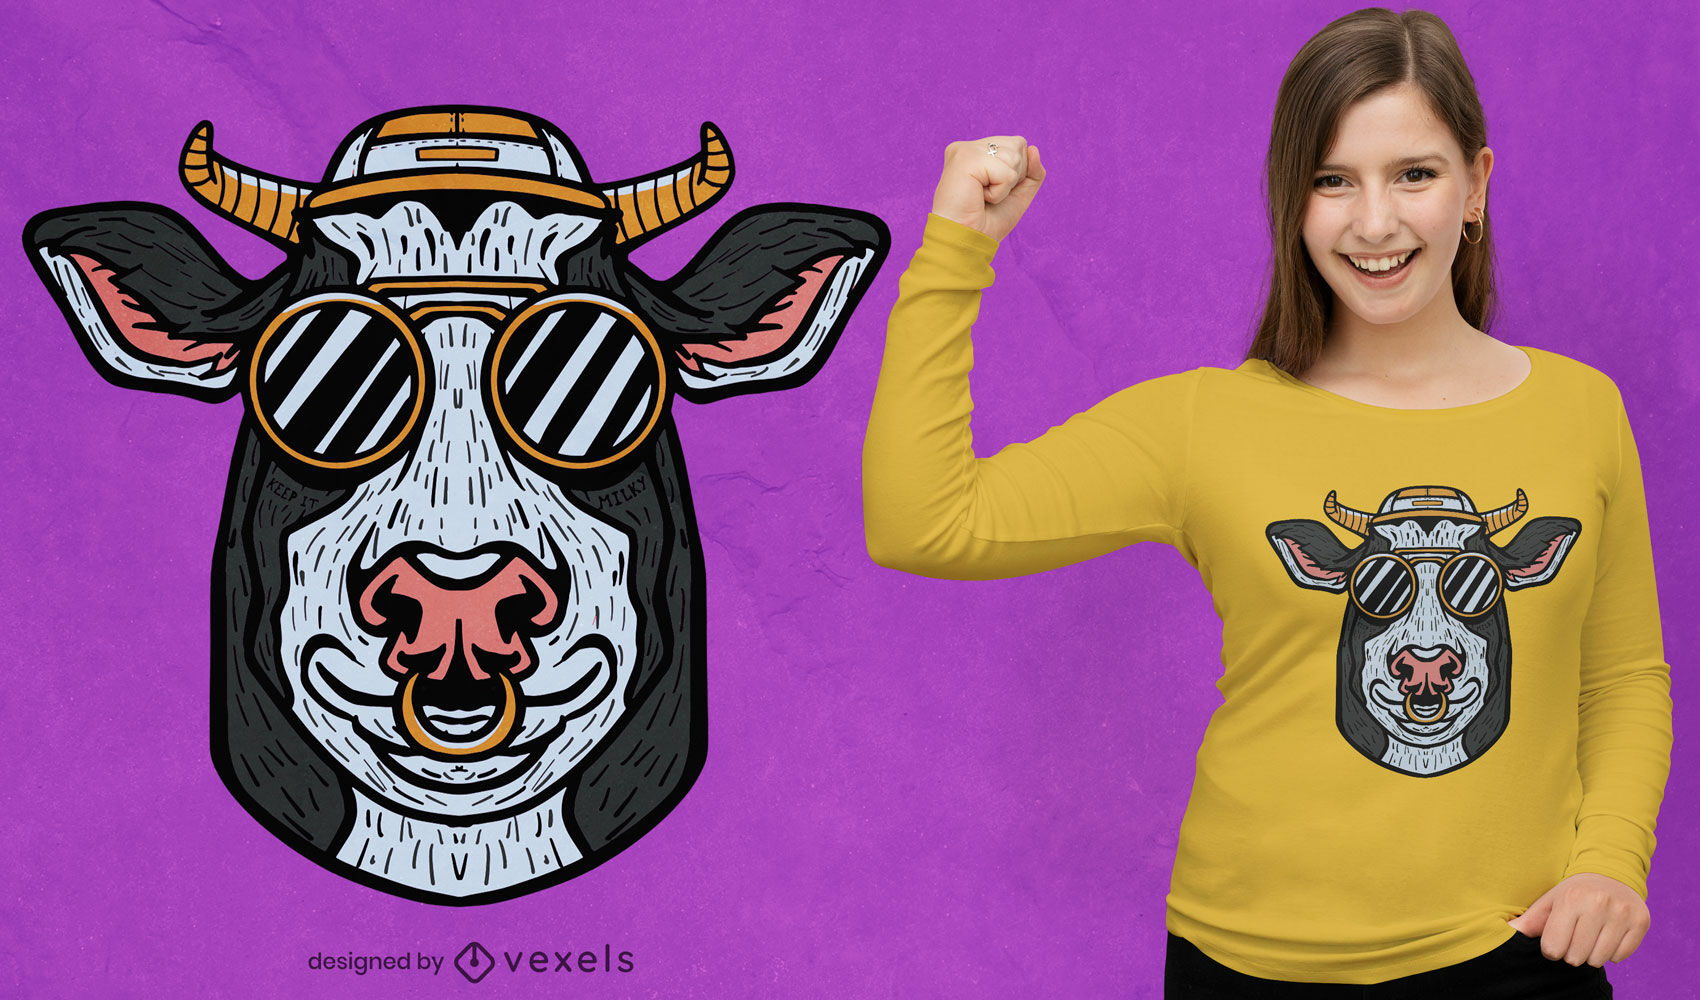 Cow animal with sunglasses t-shirt design